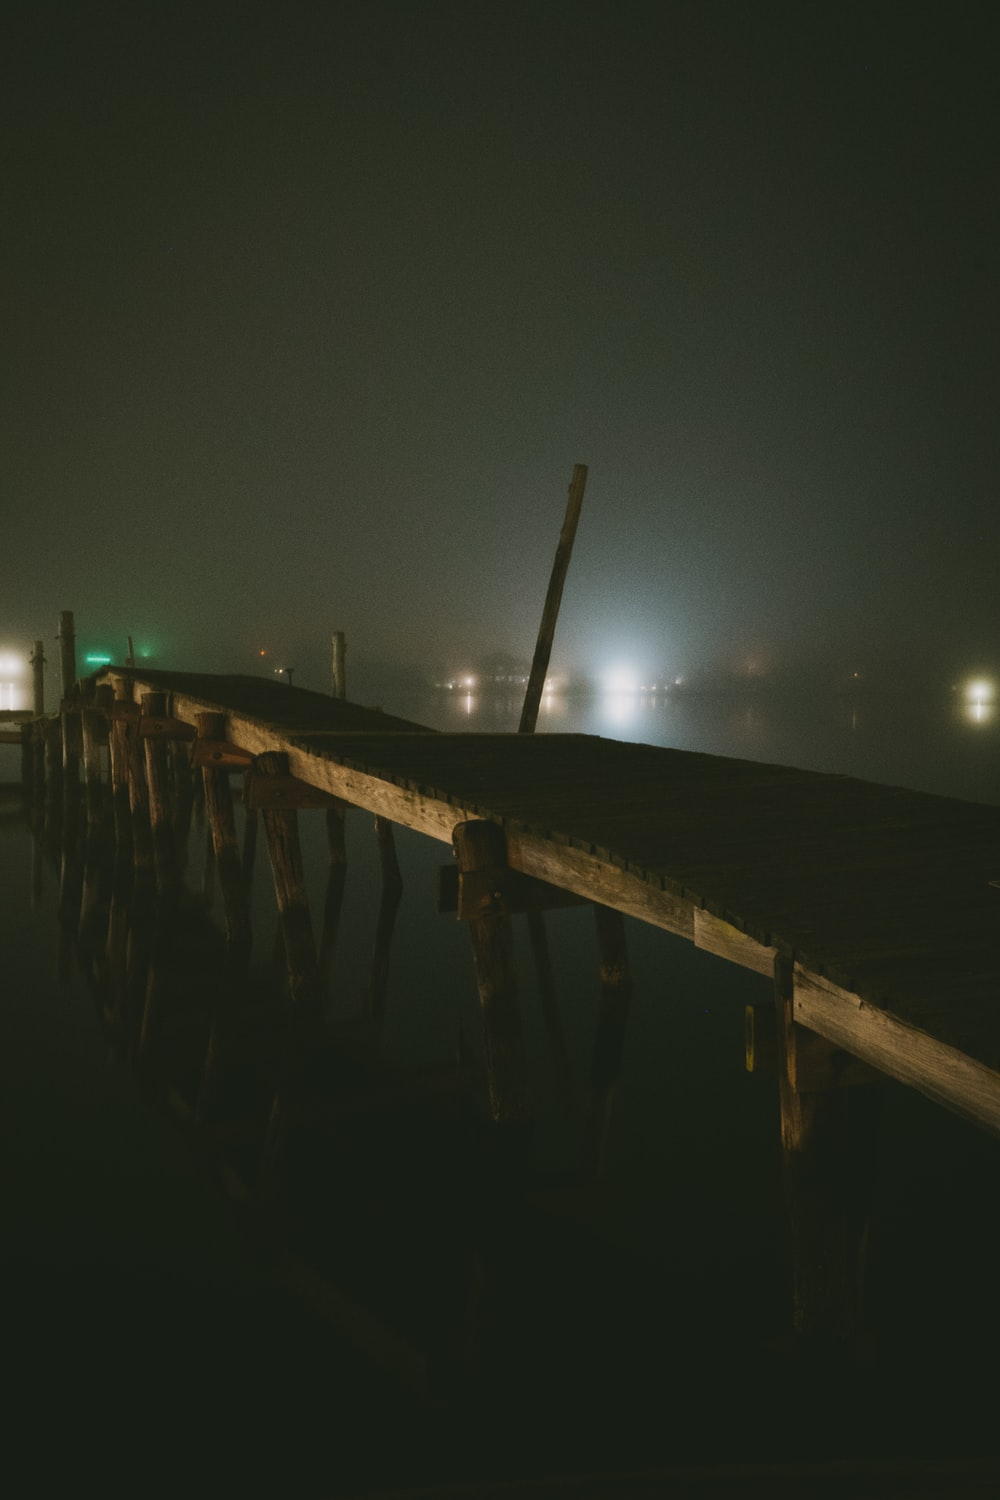 brown wooden dock on sea during night time